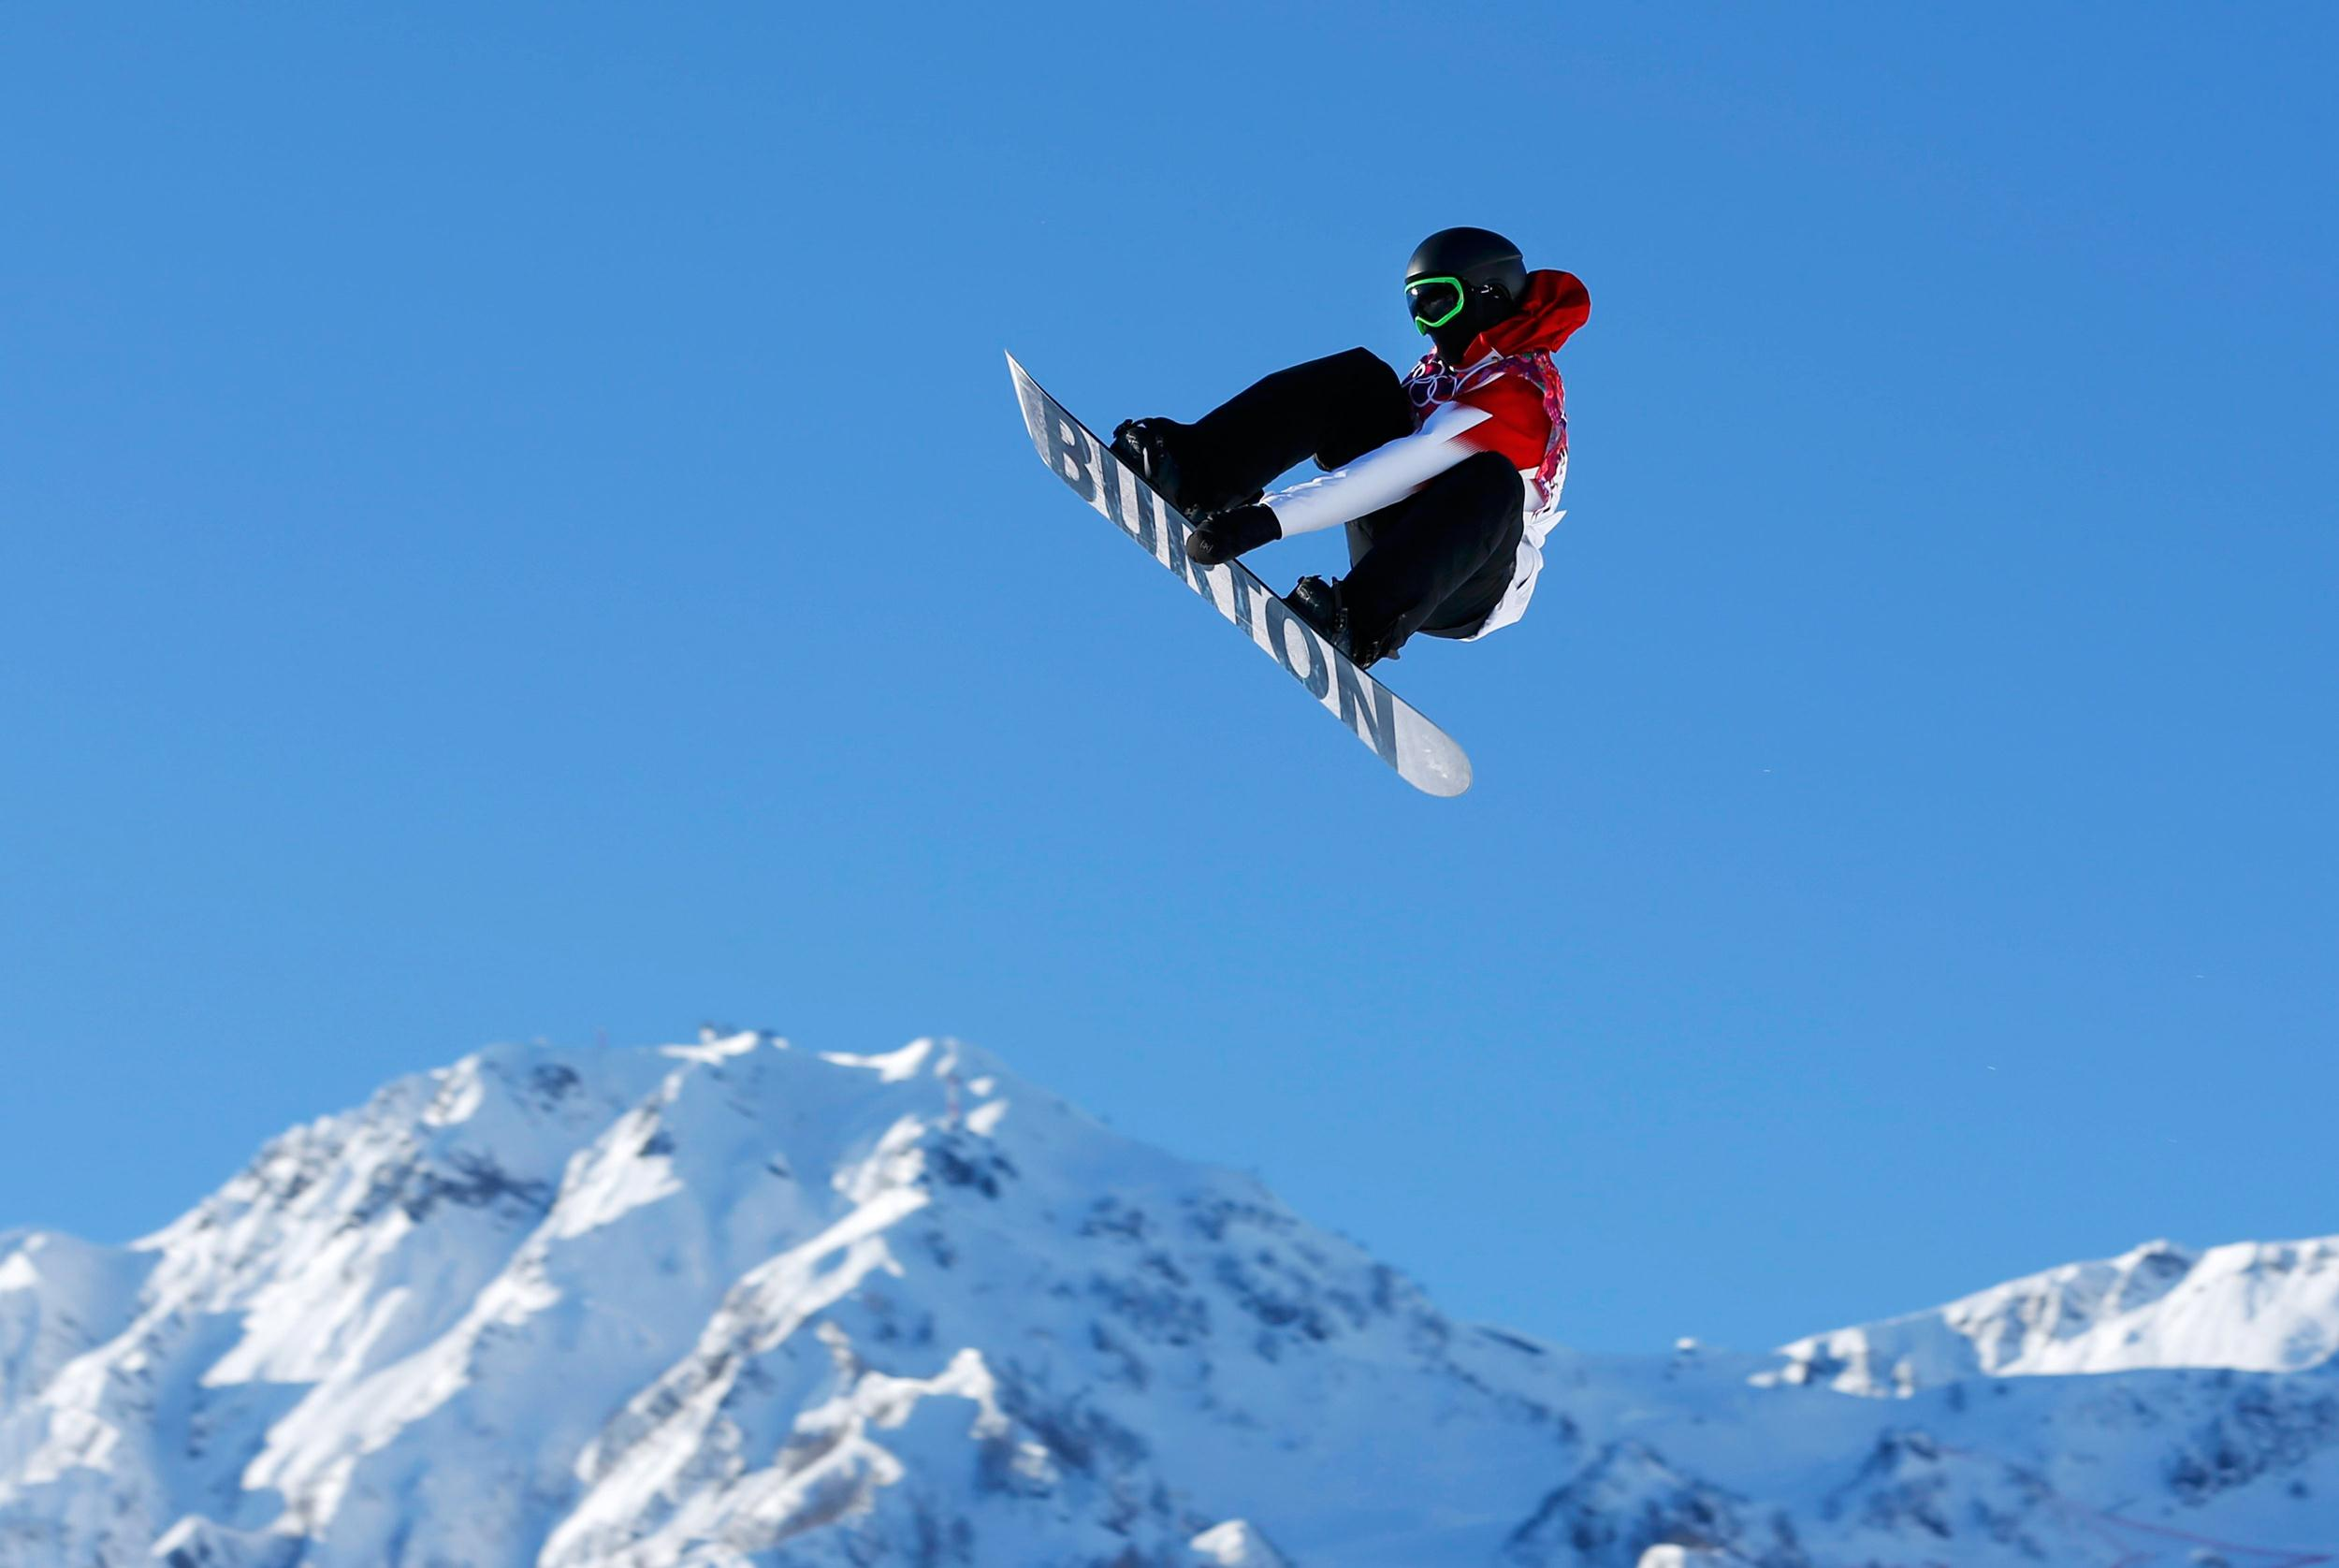 Image: Canadian snowboarder Mark McMorris spins off a jump during slopestyle snowboard training at the 2014 Sochi Winter Olympics in Rosa Khutor